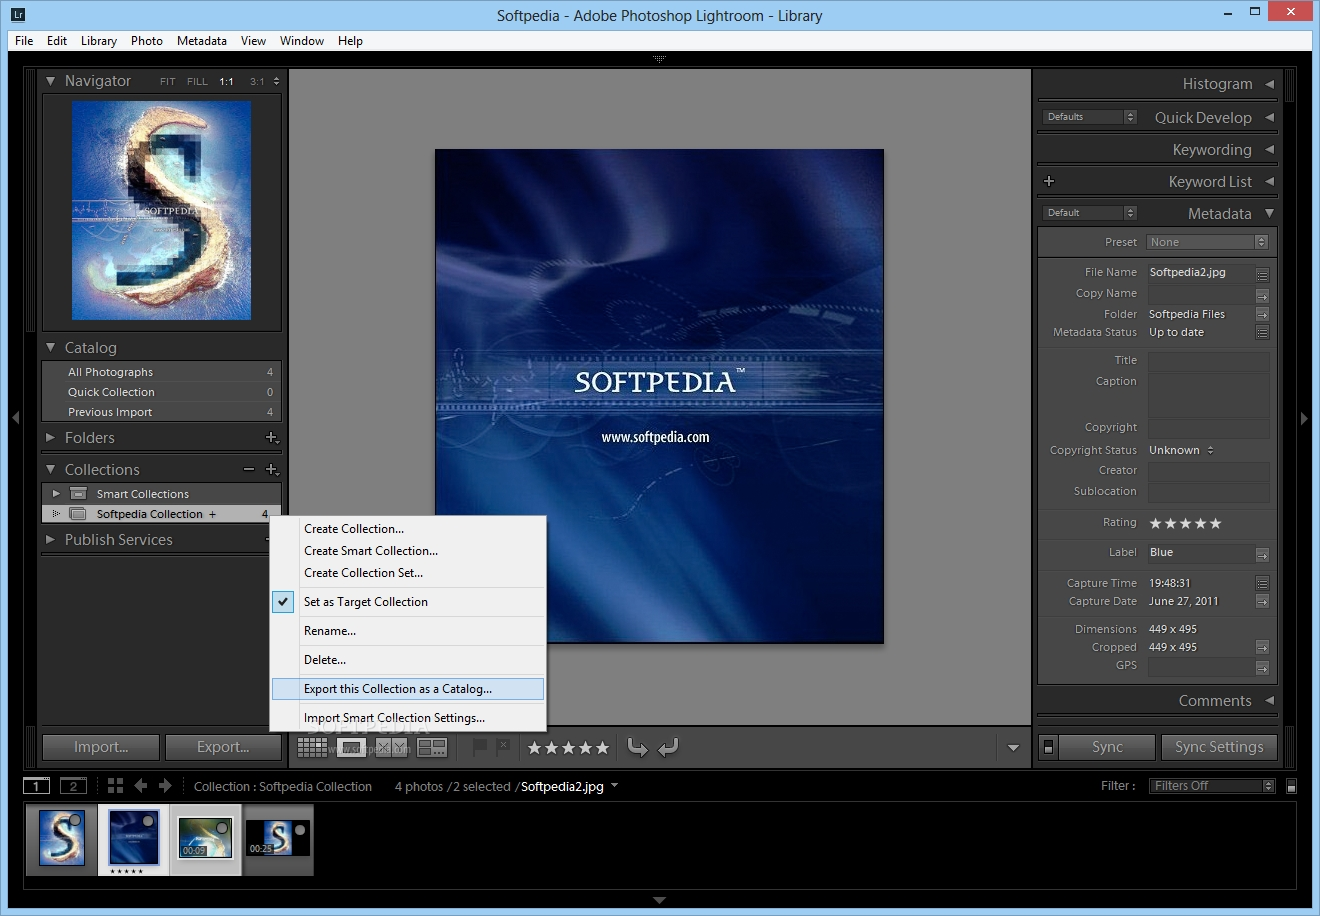 Adobe Photoshop Lightroom Screen Shot